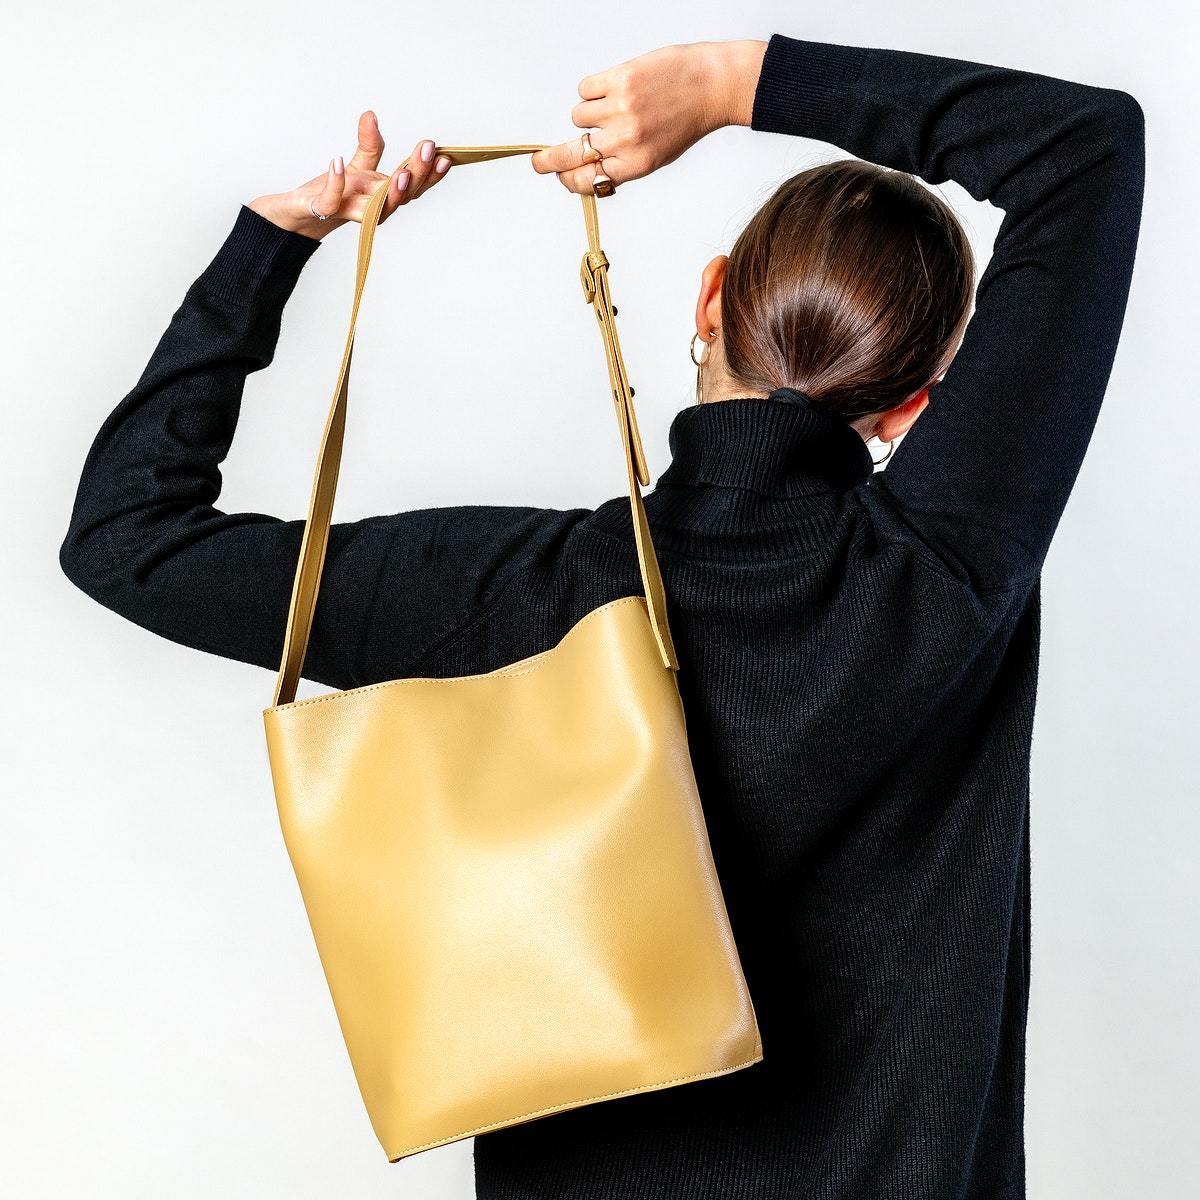 Woman from behind with a brown crossbody bag mockup